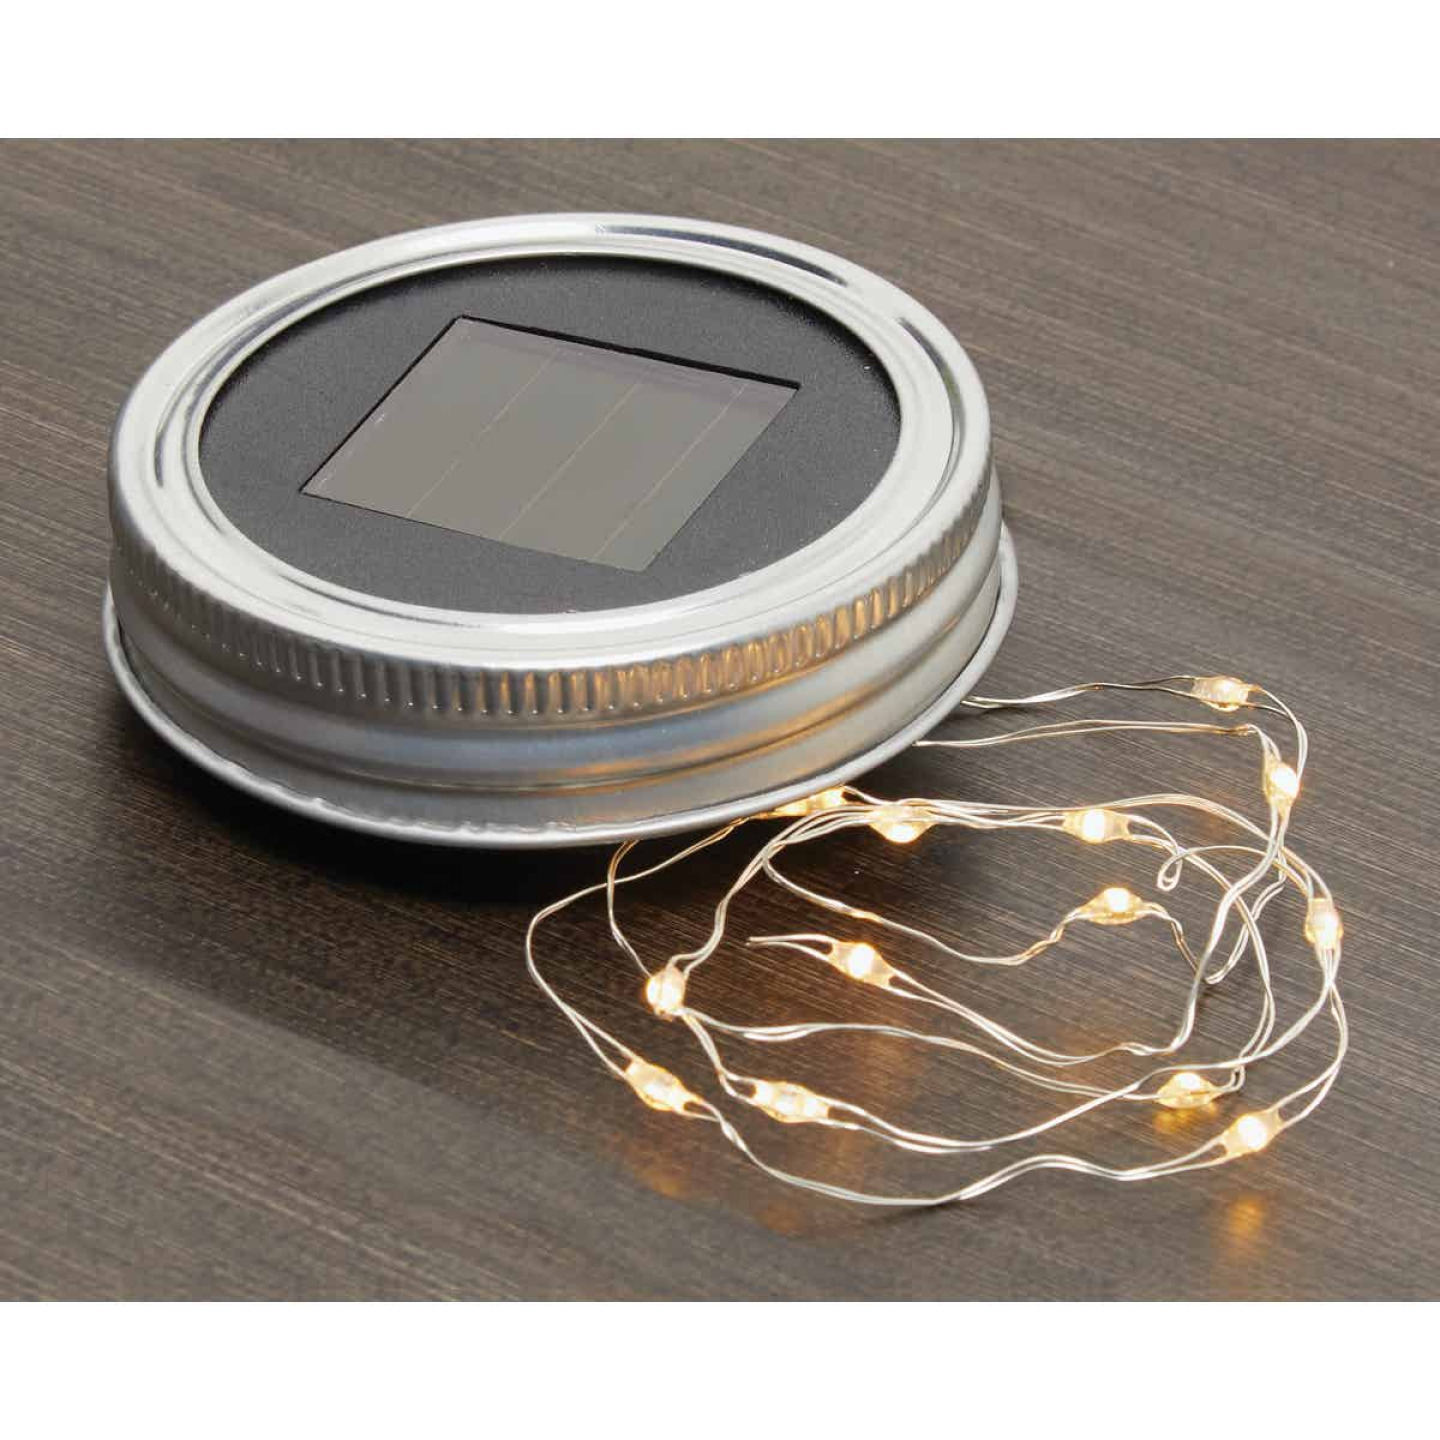 Everlasting Glow Warm White Bulb Metal Solar Mason Jar Lid with String Lights Image 3